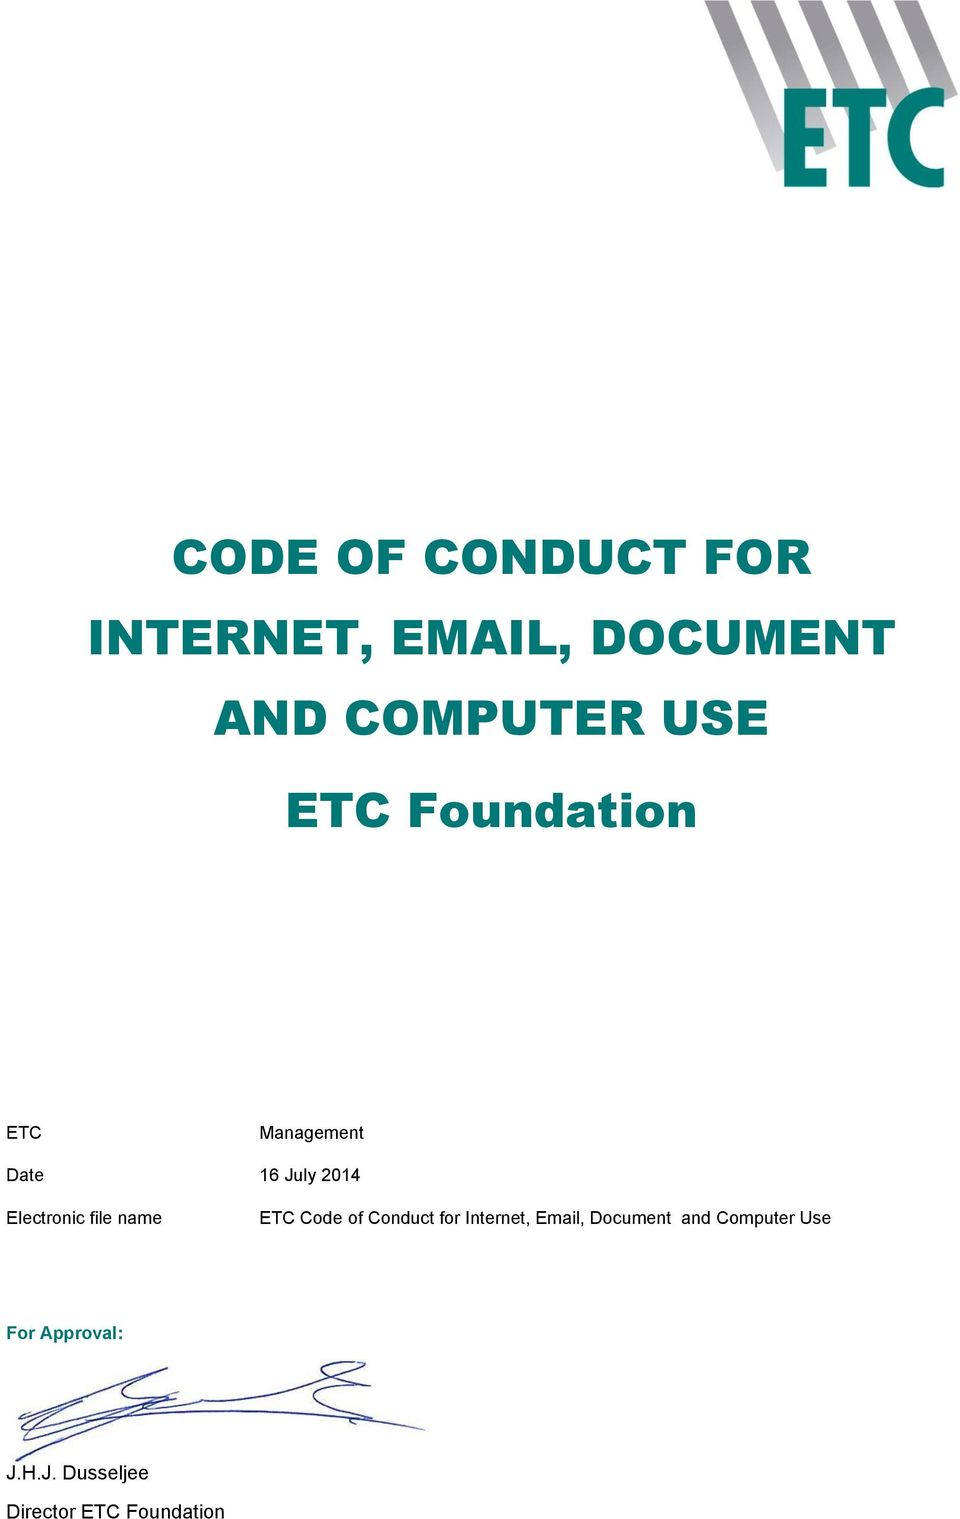 file name ETC Cde f Cnduct fr Internet, Email, Dcument and